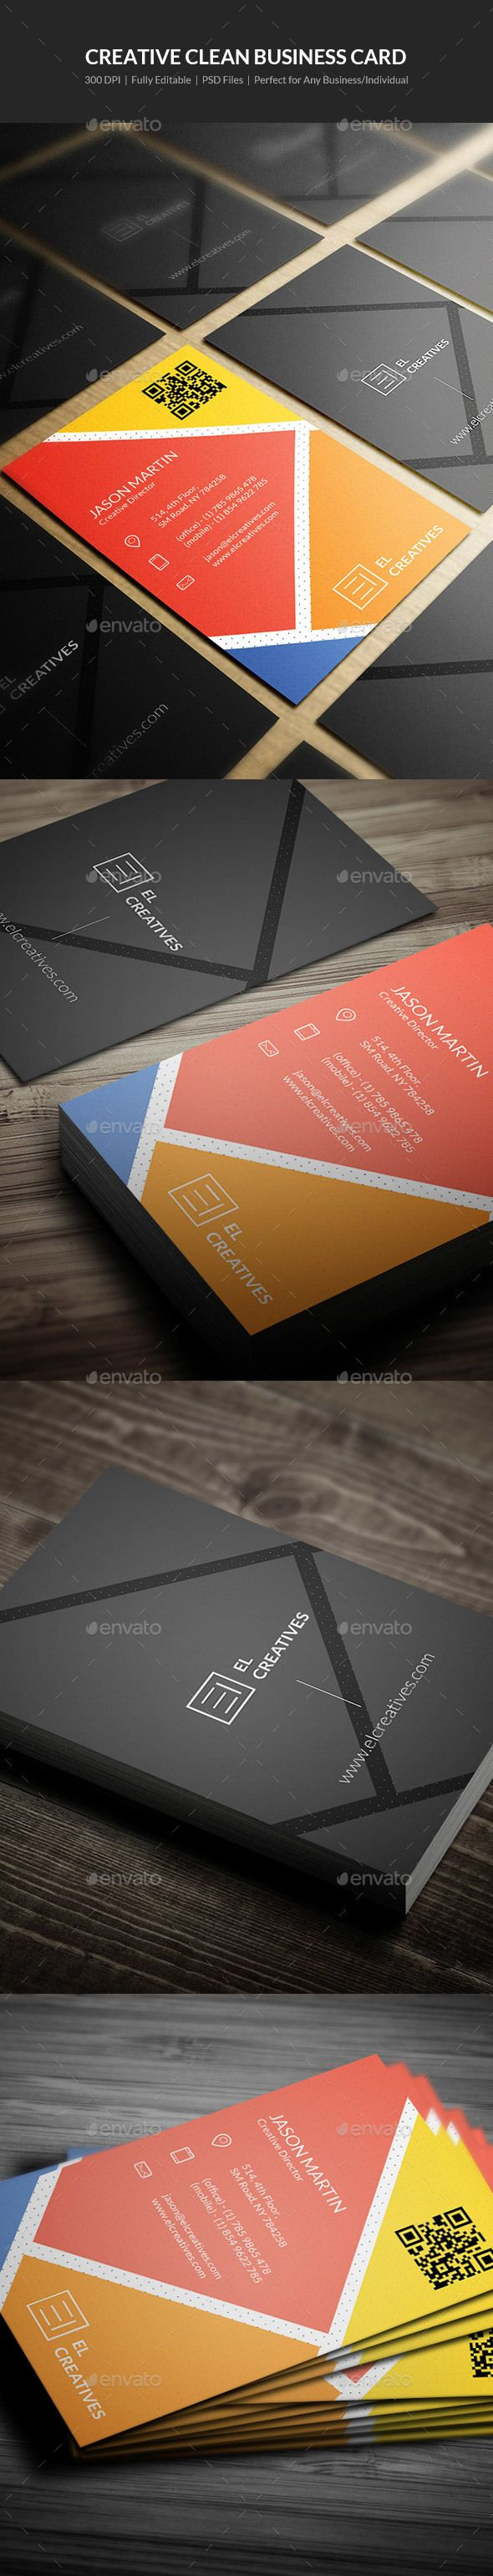 40 best bussiness cards images on Pinterest   Colours, 70th ...